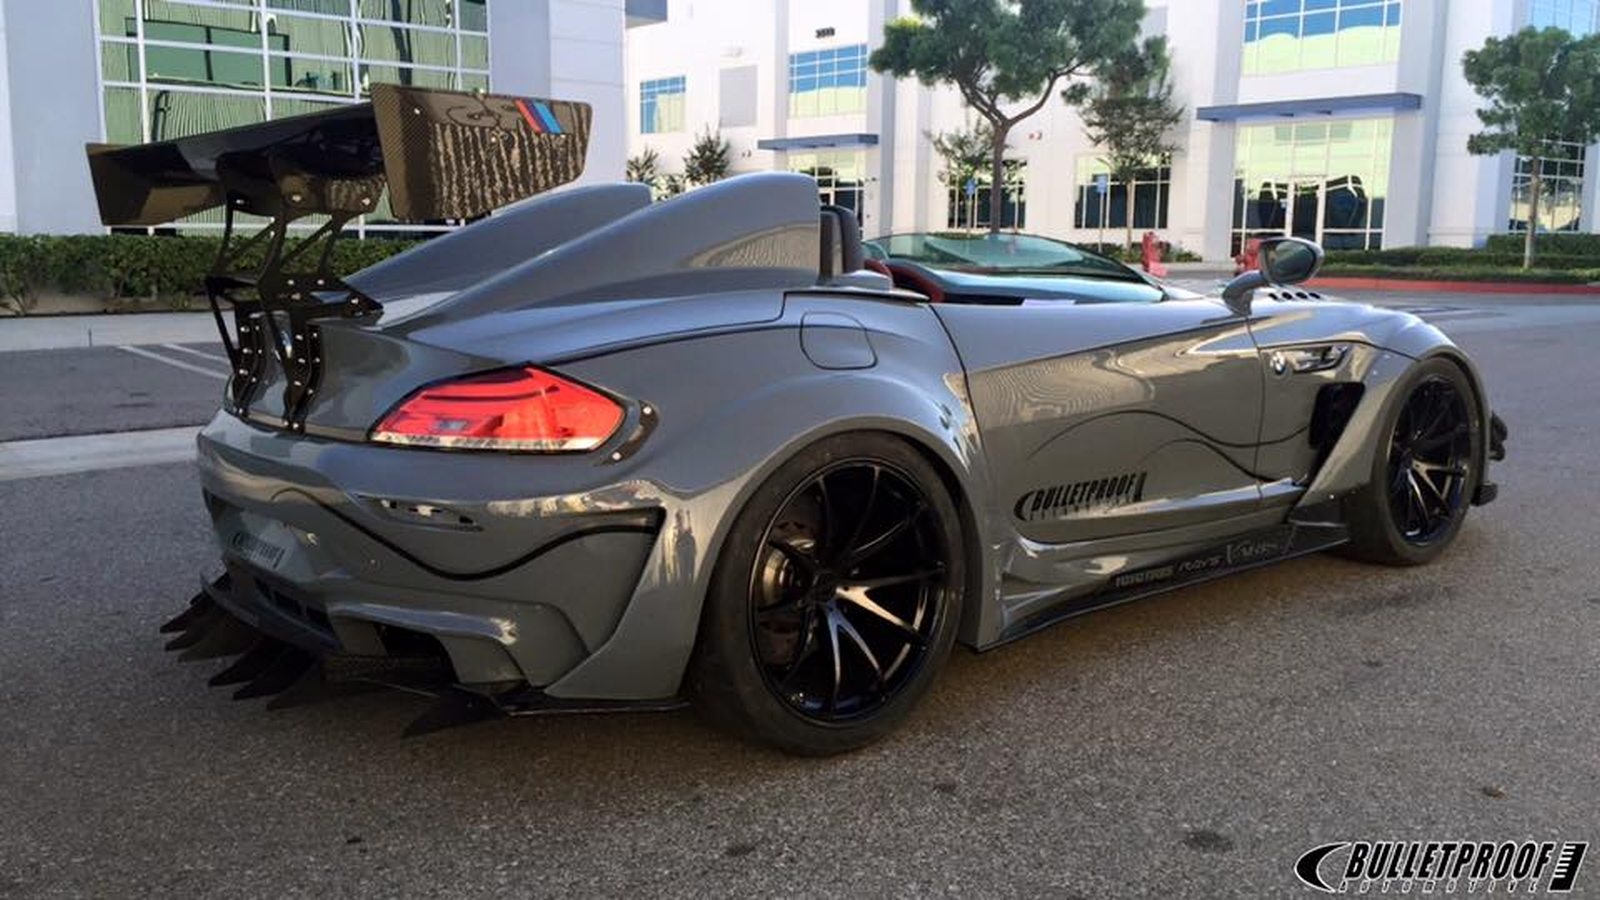 This Bmw Z4 Gt Continuum By Bulletproof Automotive Will Give The Batmobile A Sleepless Knight